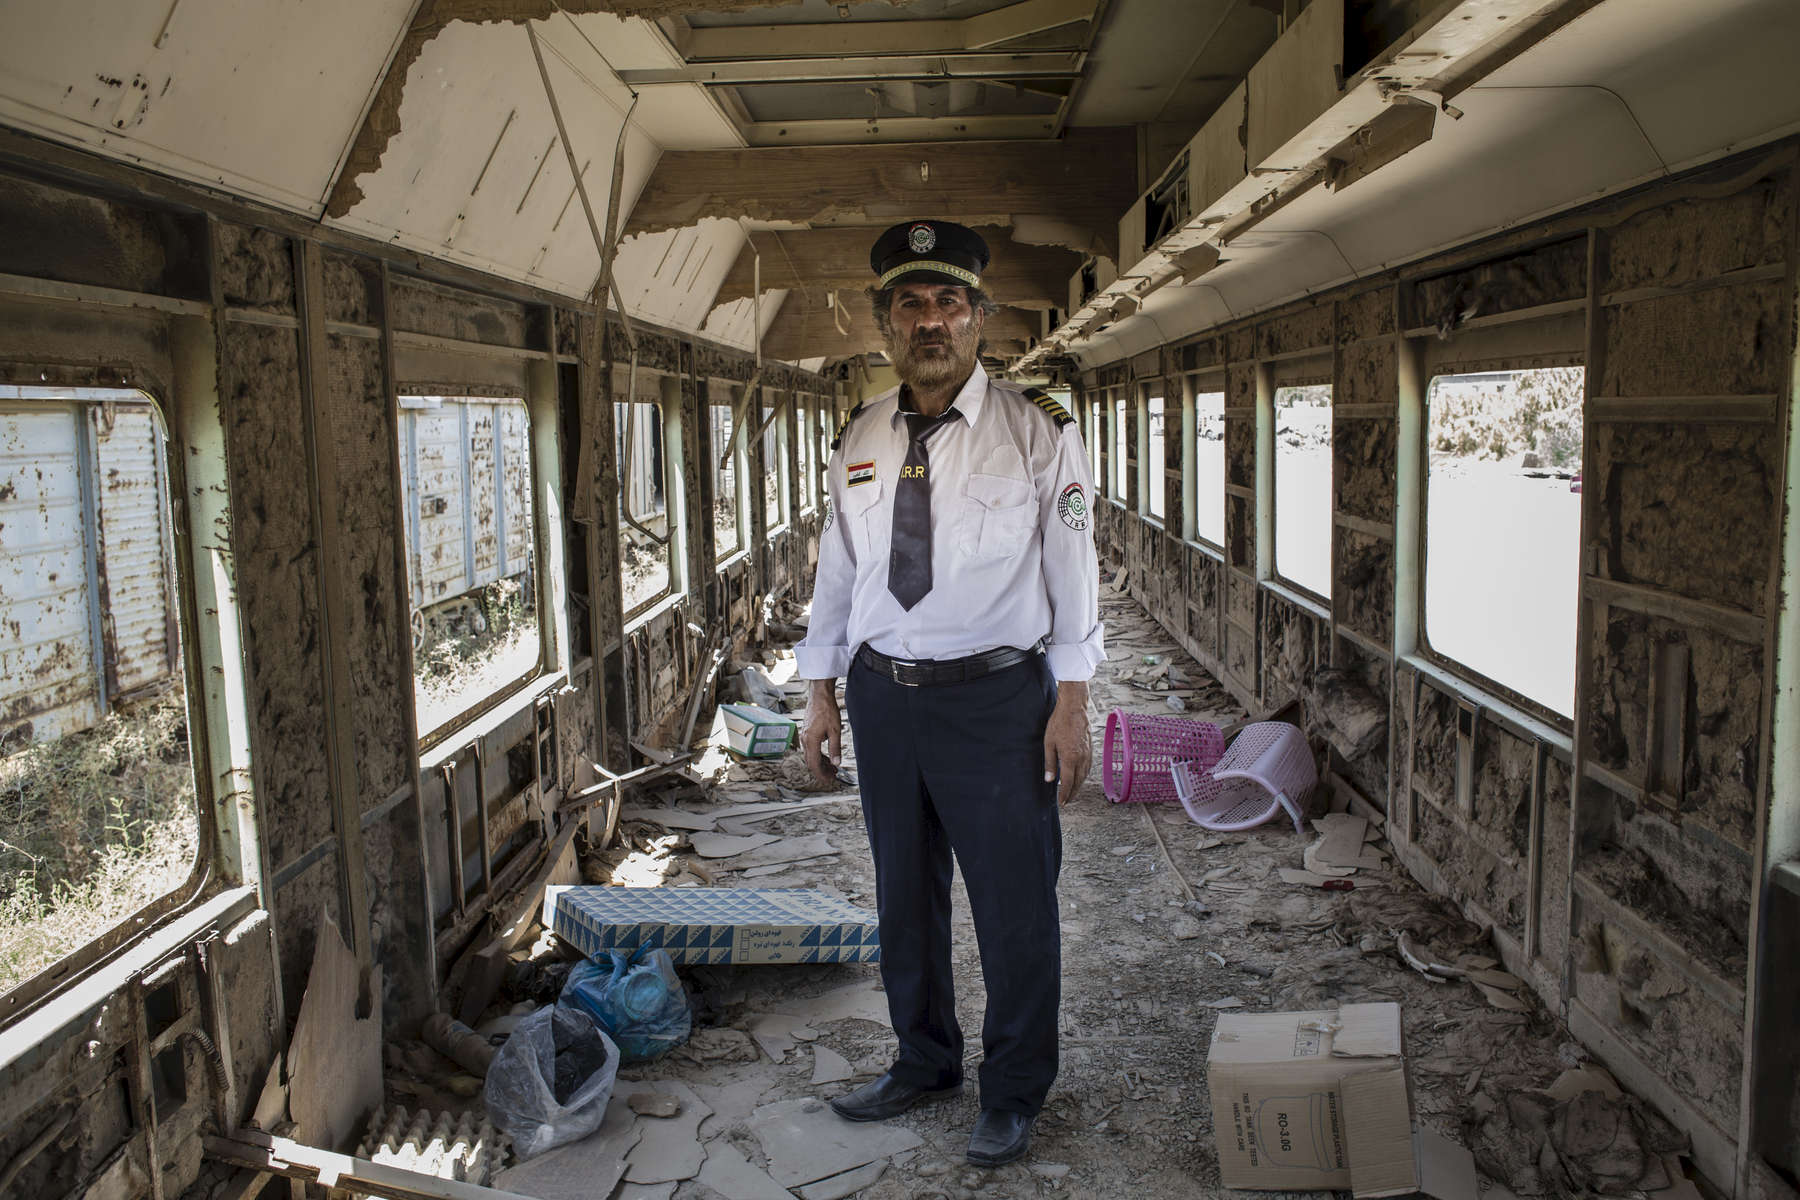 11/08/2016 -- Baghdad, Iraq -- A portrait of Ali Al-Karkhi inside one of the looted trains. Al-Karkhi explains that when he saw the trains being looted, he felt like bits of his body were being cut off.